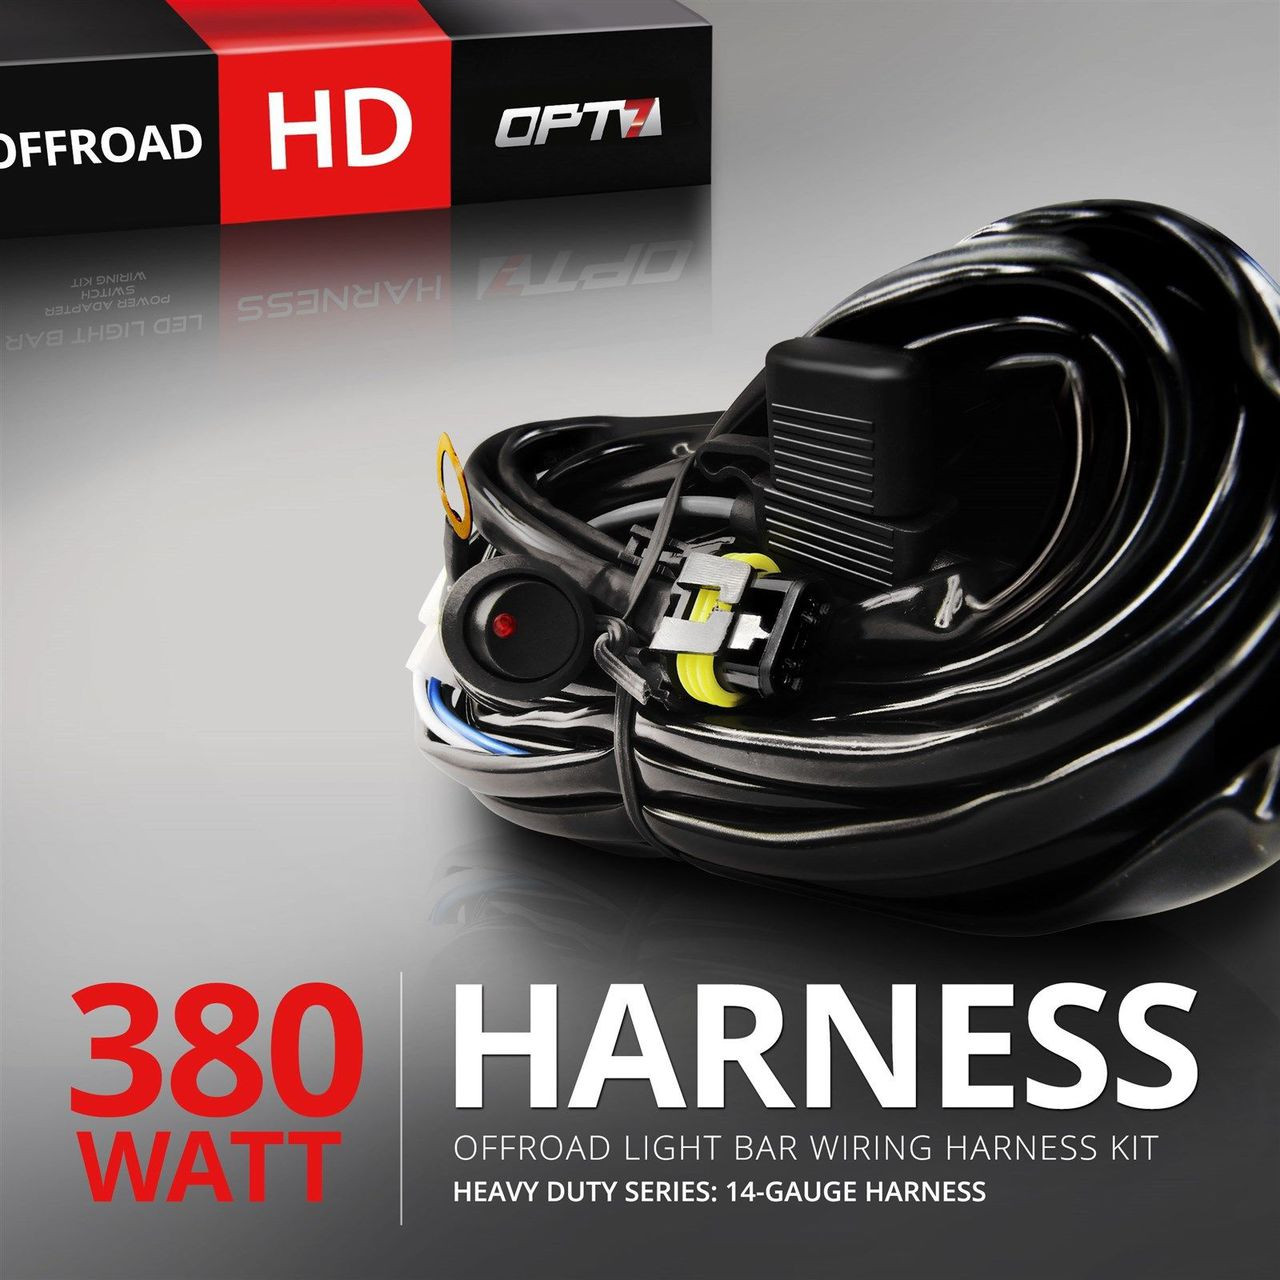 hd led light bar wiring harness off road relay switch 40 amp 380w opt7 [ 1280 x 1280 Pixel ]